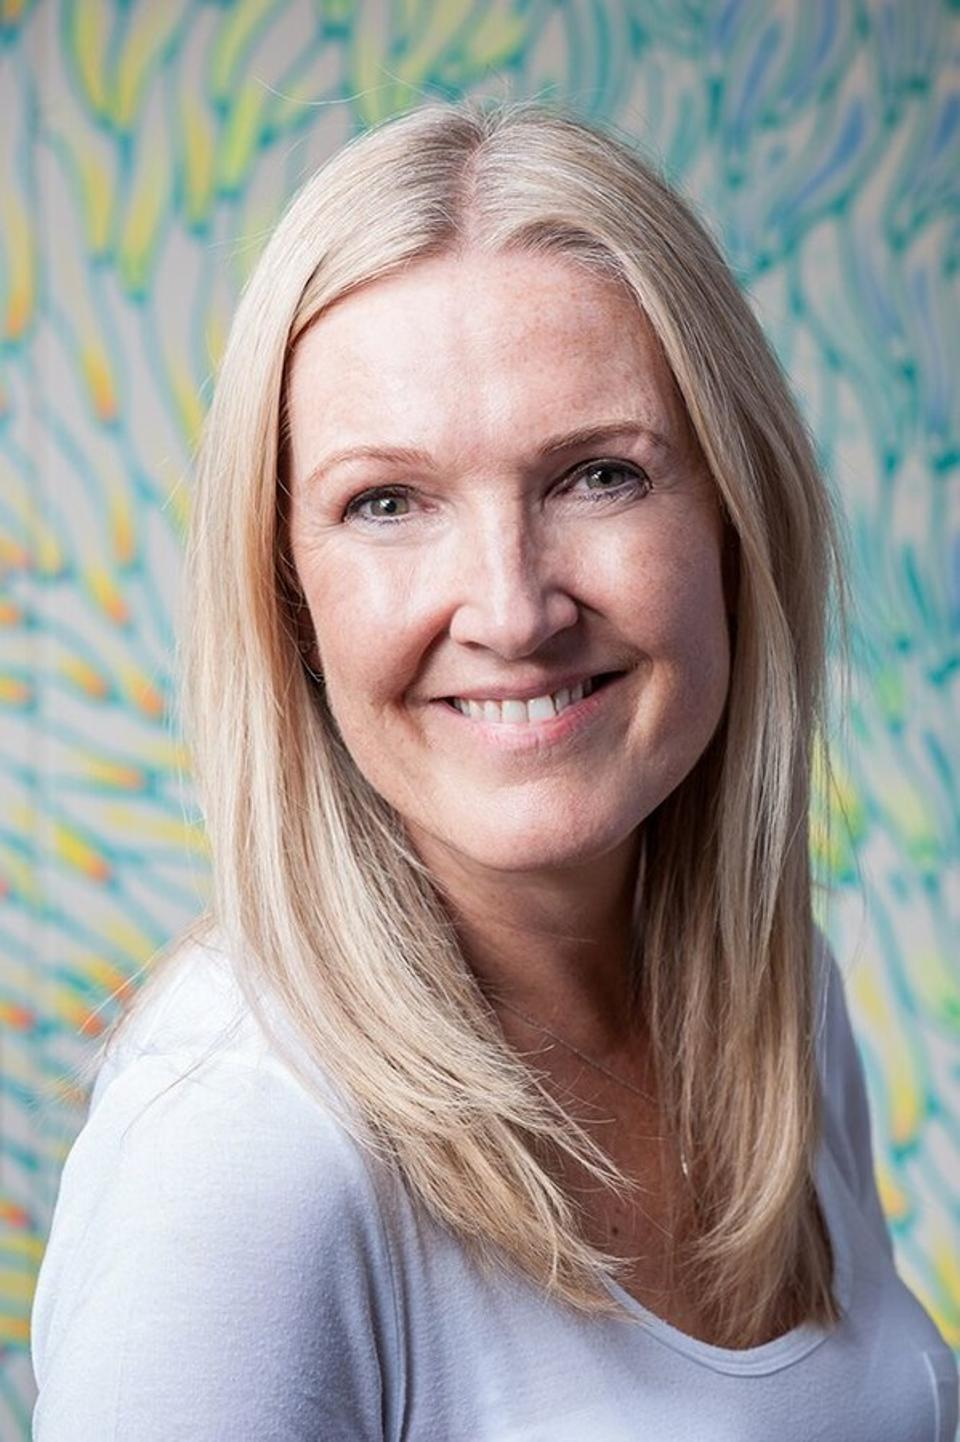 Portrait of Fiona Mullan - Chief People Officer at Ding